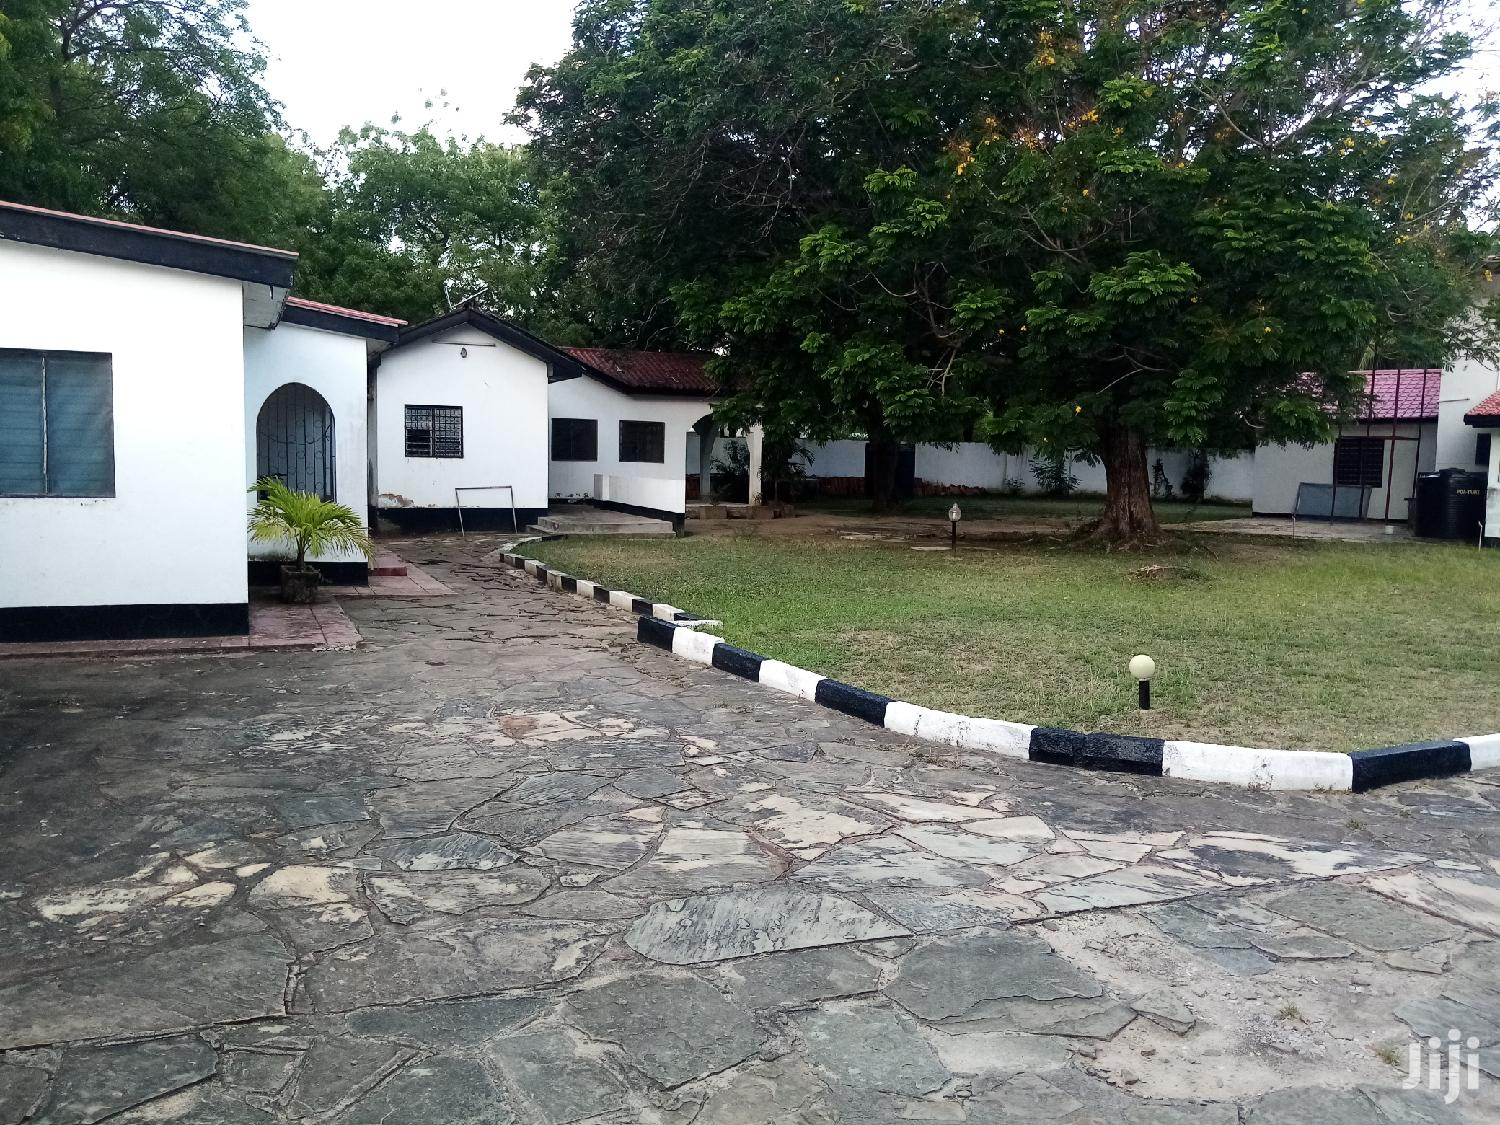 Own Compound 4 Bedroom And 3 Bedroom Masionatte In One Comp   Houses & Apartments For Rent for sale in Nyali, Mombasa, Kenya